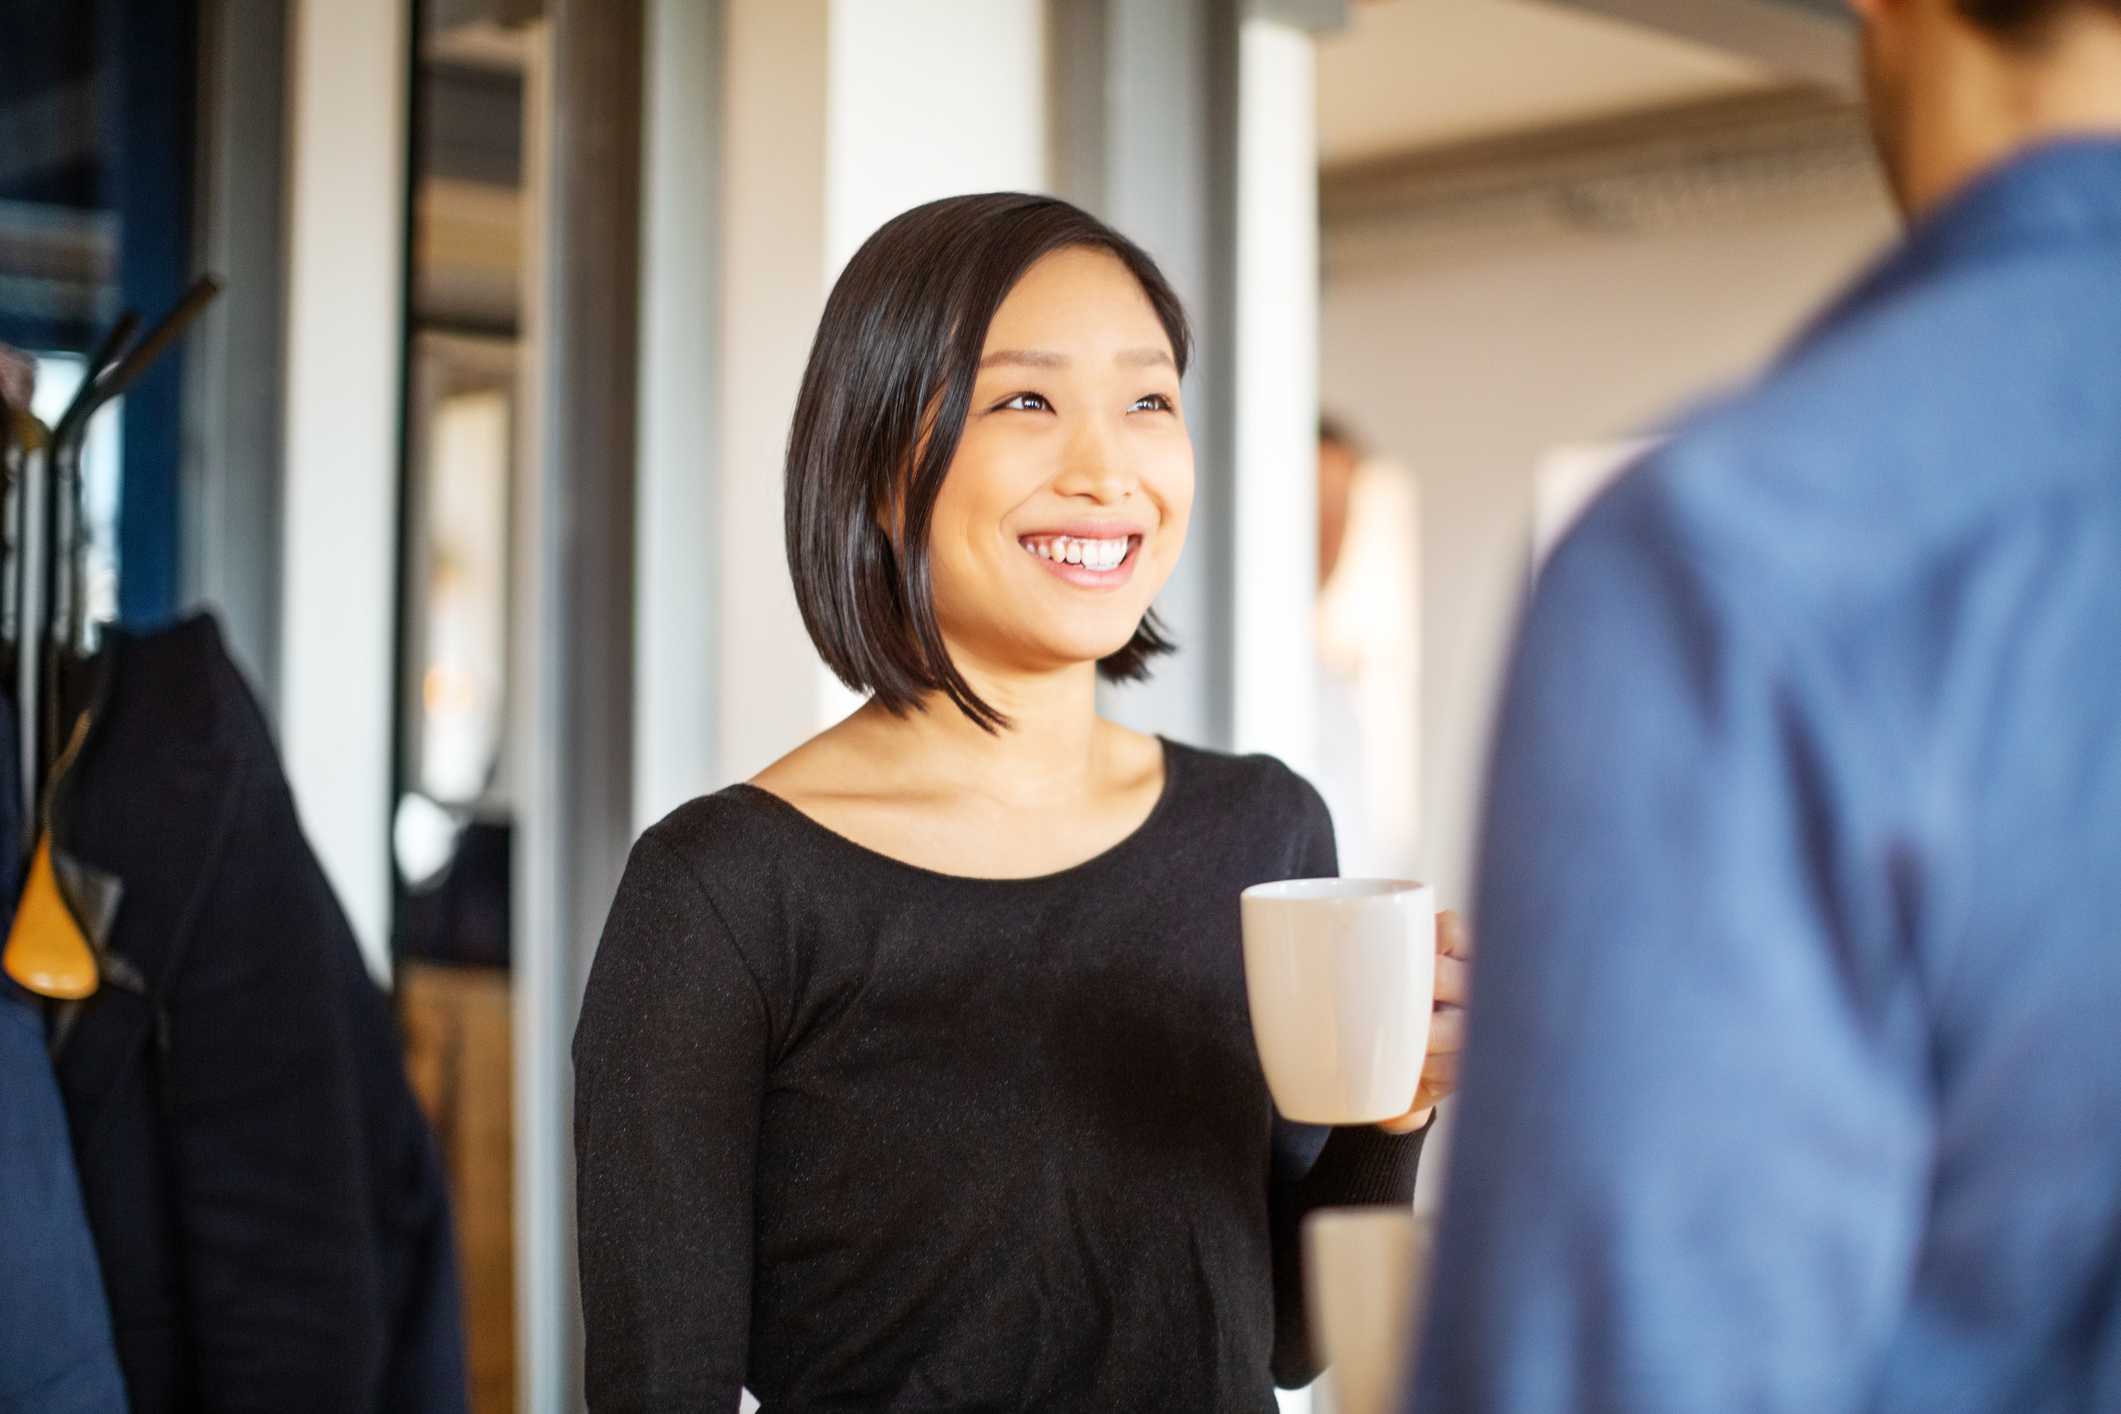 Woman having coffee with co-worker in office.